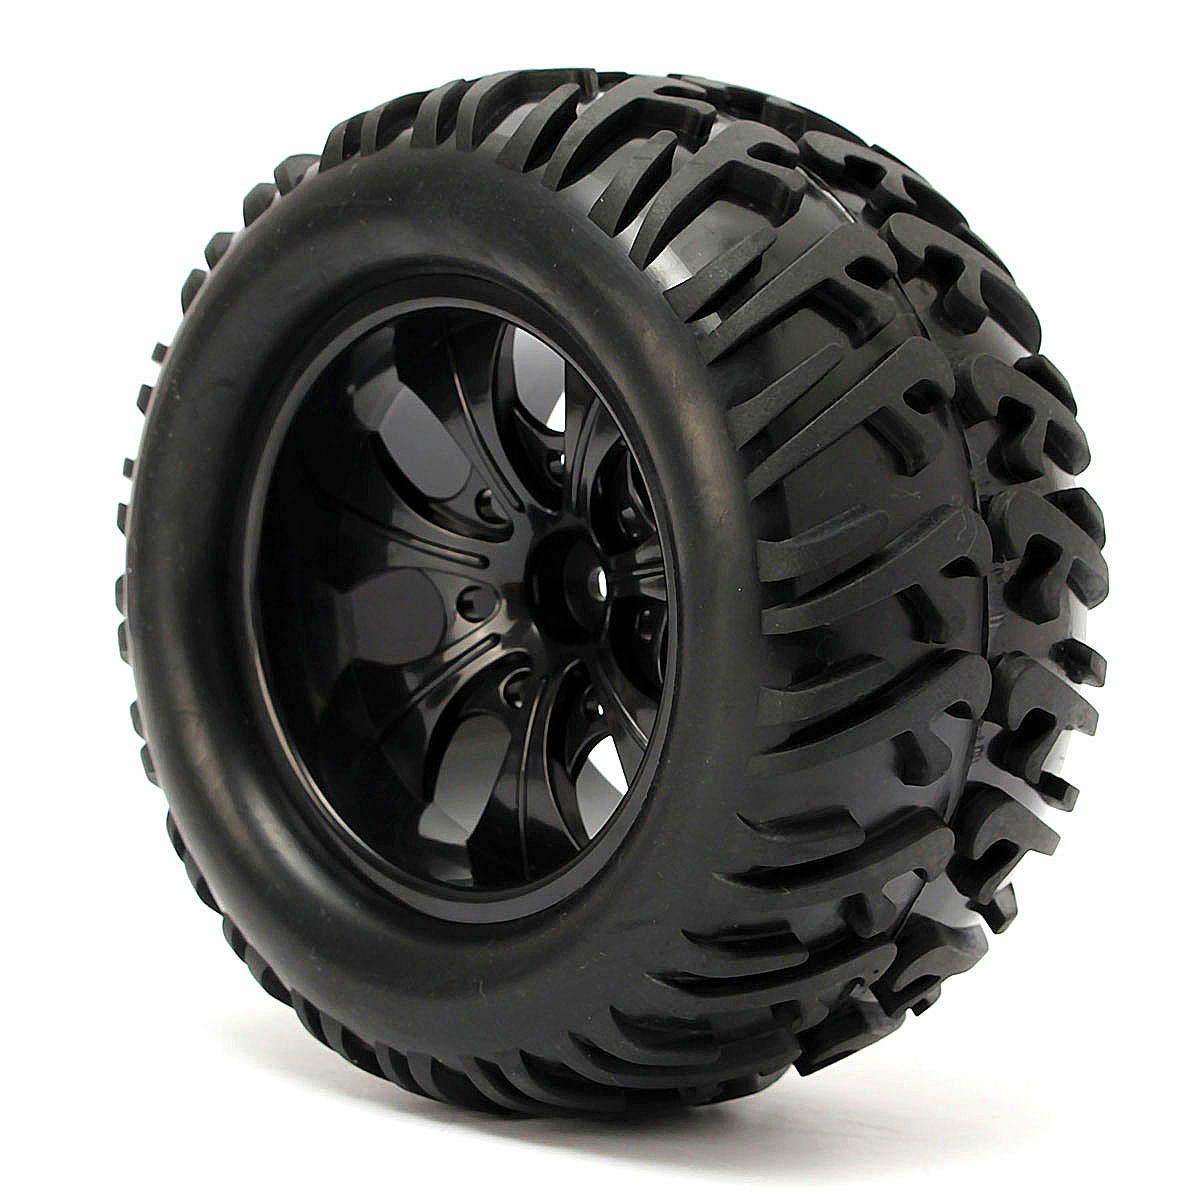 4PCS 12mm Racing Wheel Rim & Tires Redcat HSP 1:10 Monster truck RC On-Road Car Parts 12mm Hub 88005 hsp rc car 1 10 electric power remote control car 94601pro 4wd off road short course truck rtr similar redcat himoto racing